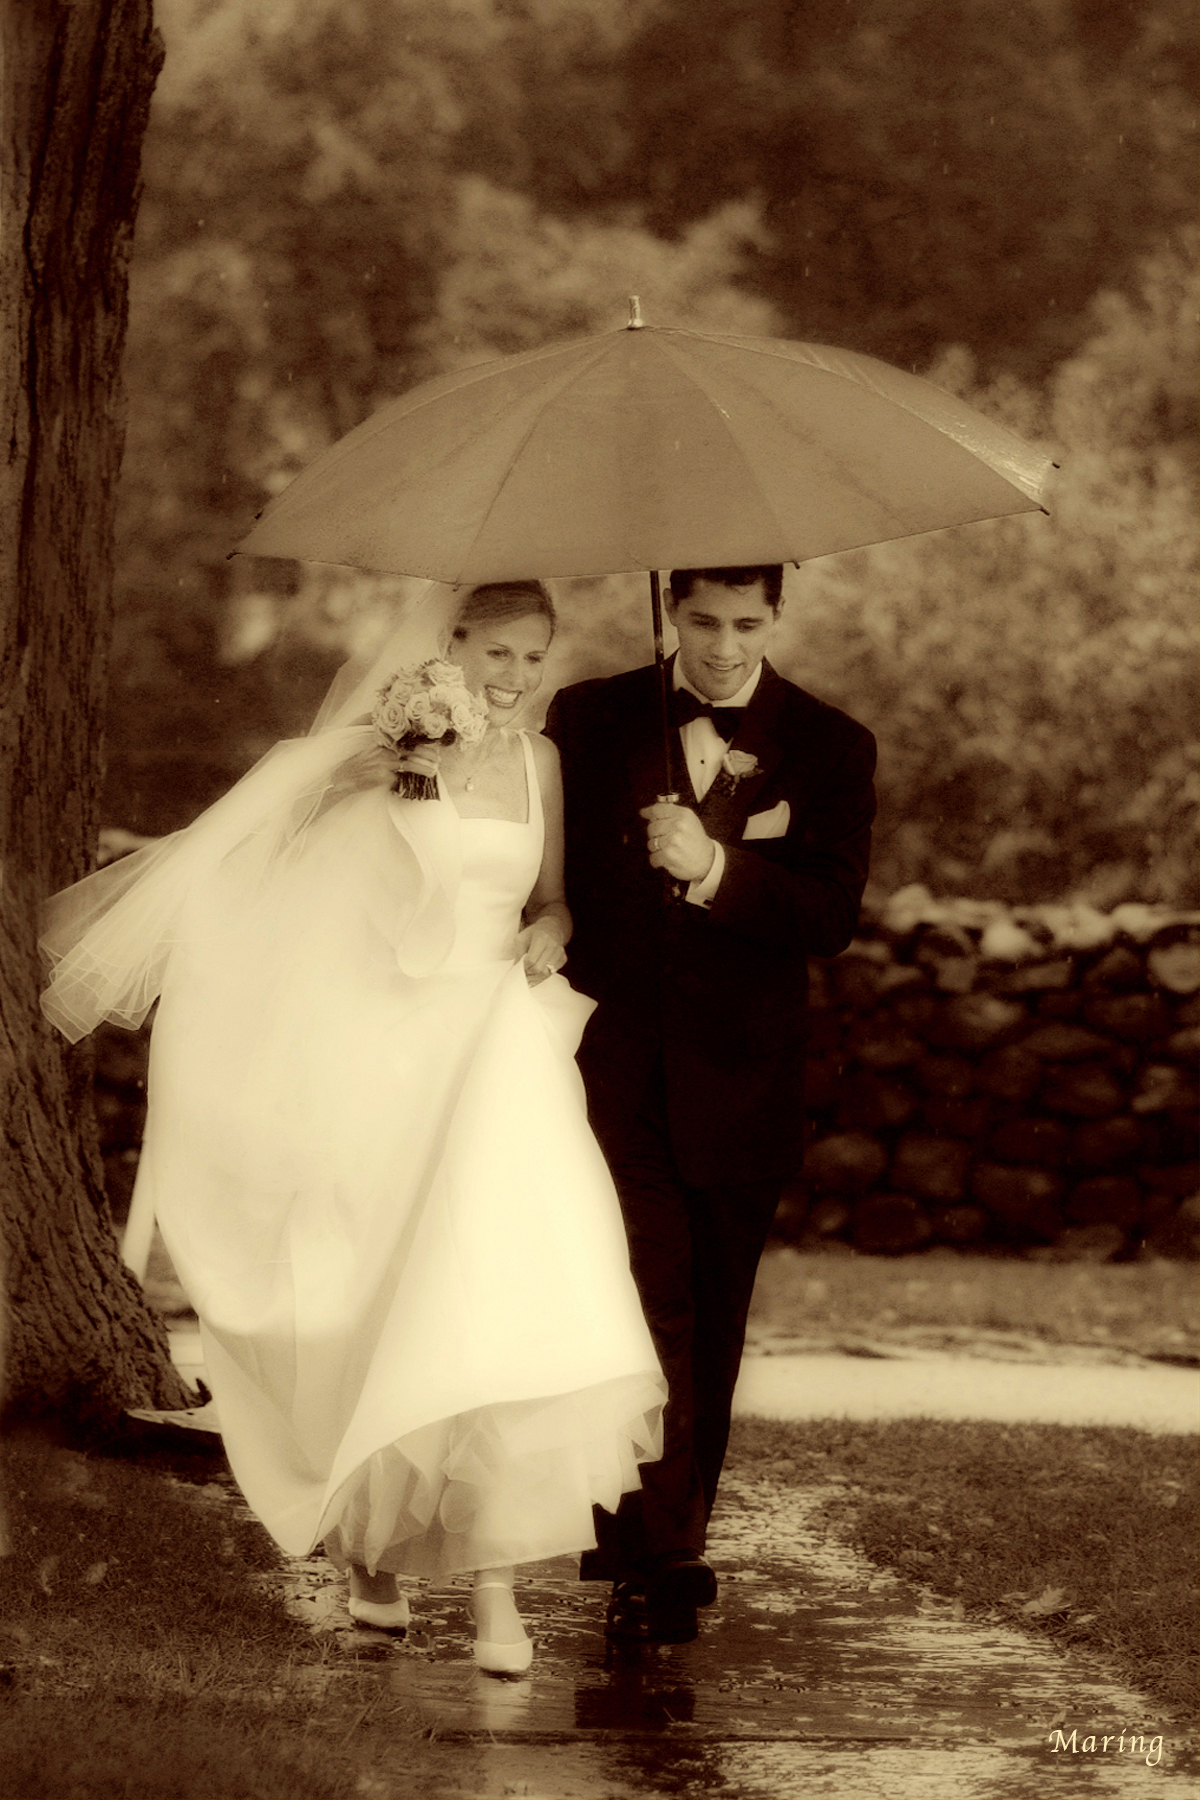 Photographer Charles Maring doesn't let the rain get in the way of romance. Instead, he uses the weather to his advantage capturing moments that the couple would never want to trade for a sunny day.  Wedding at The Hillstead Museum in Connecticut.